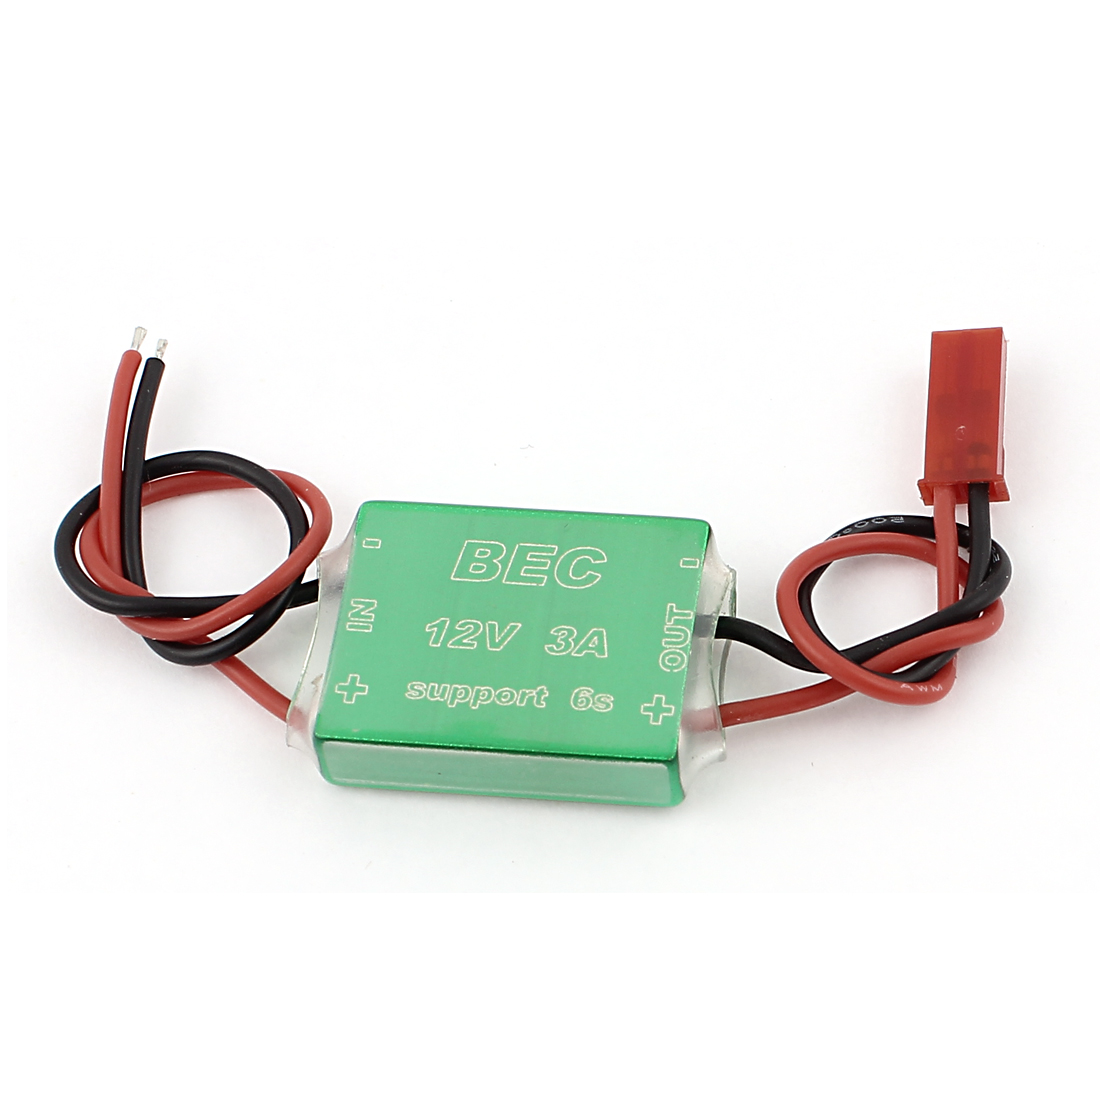 FPV 1.2G 5.8G Micro BEC w CNC Enclosure 12V 3A Output 6S for RC Model